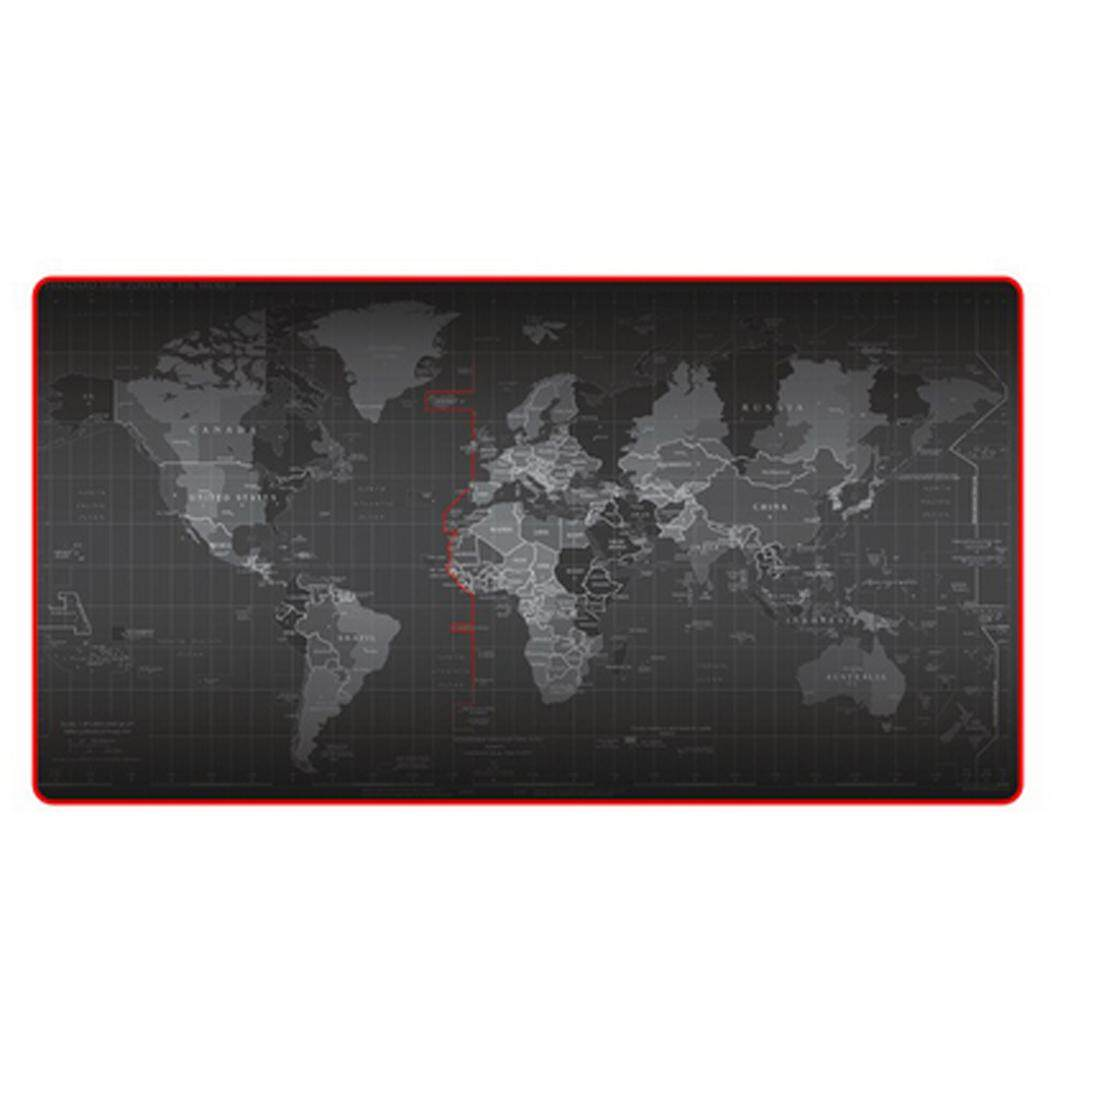 Large World Map Mouse Pad Computer Gaming Mousepad(30cm*80cm*2cm) - intl